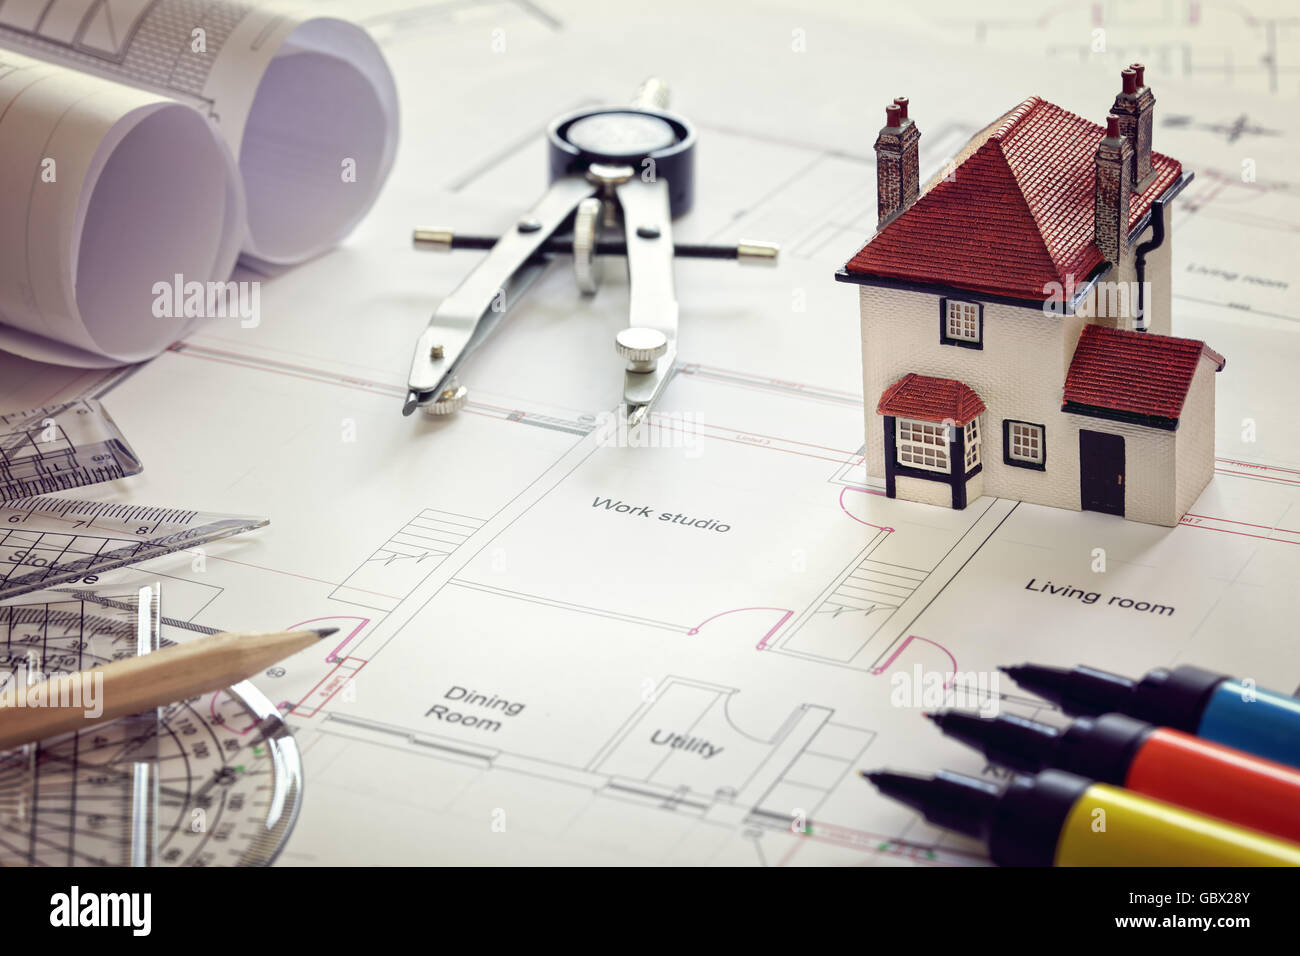 House plan blueprint and model house concept for new house design or house plan blueprint and model house concept for new house design or home improvement malvernweather Gallery